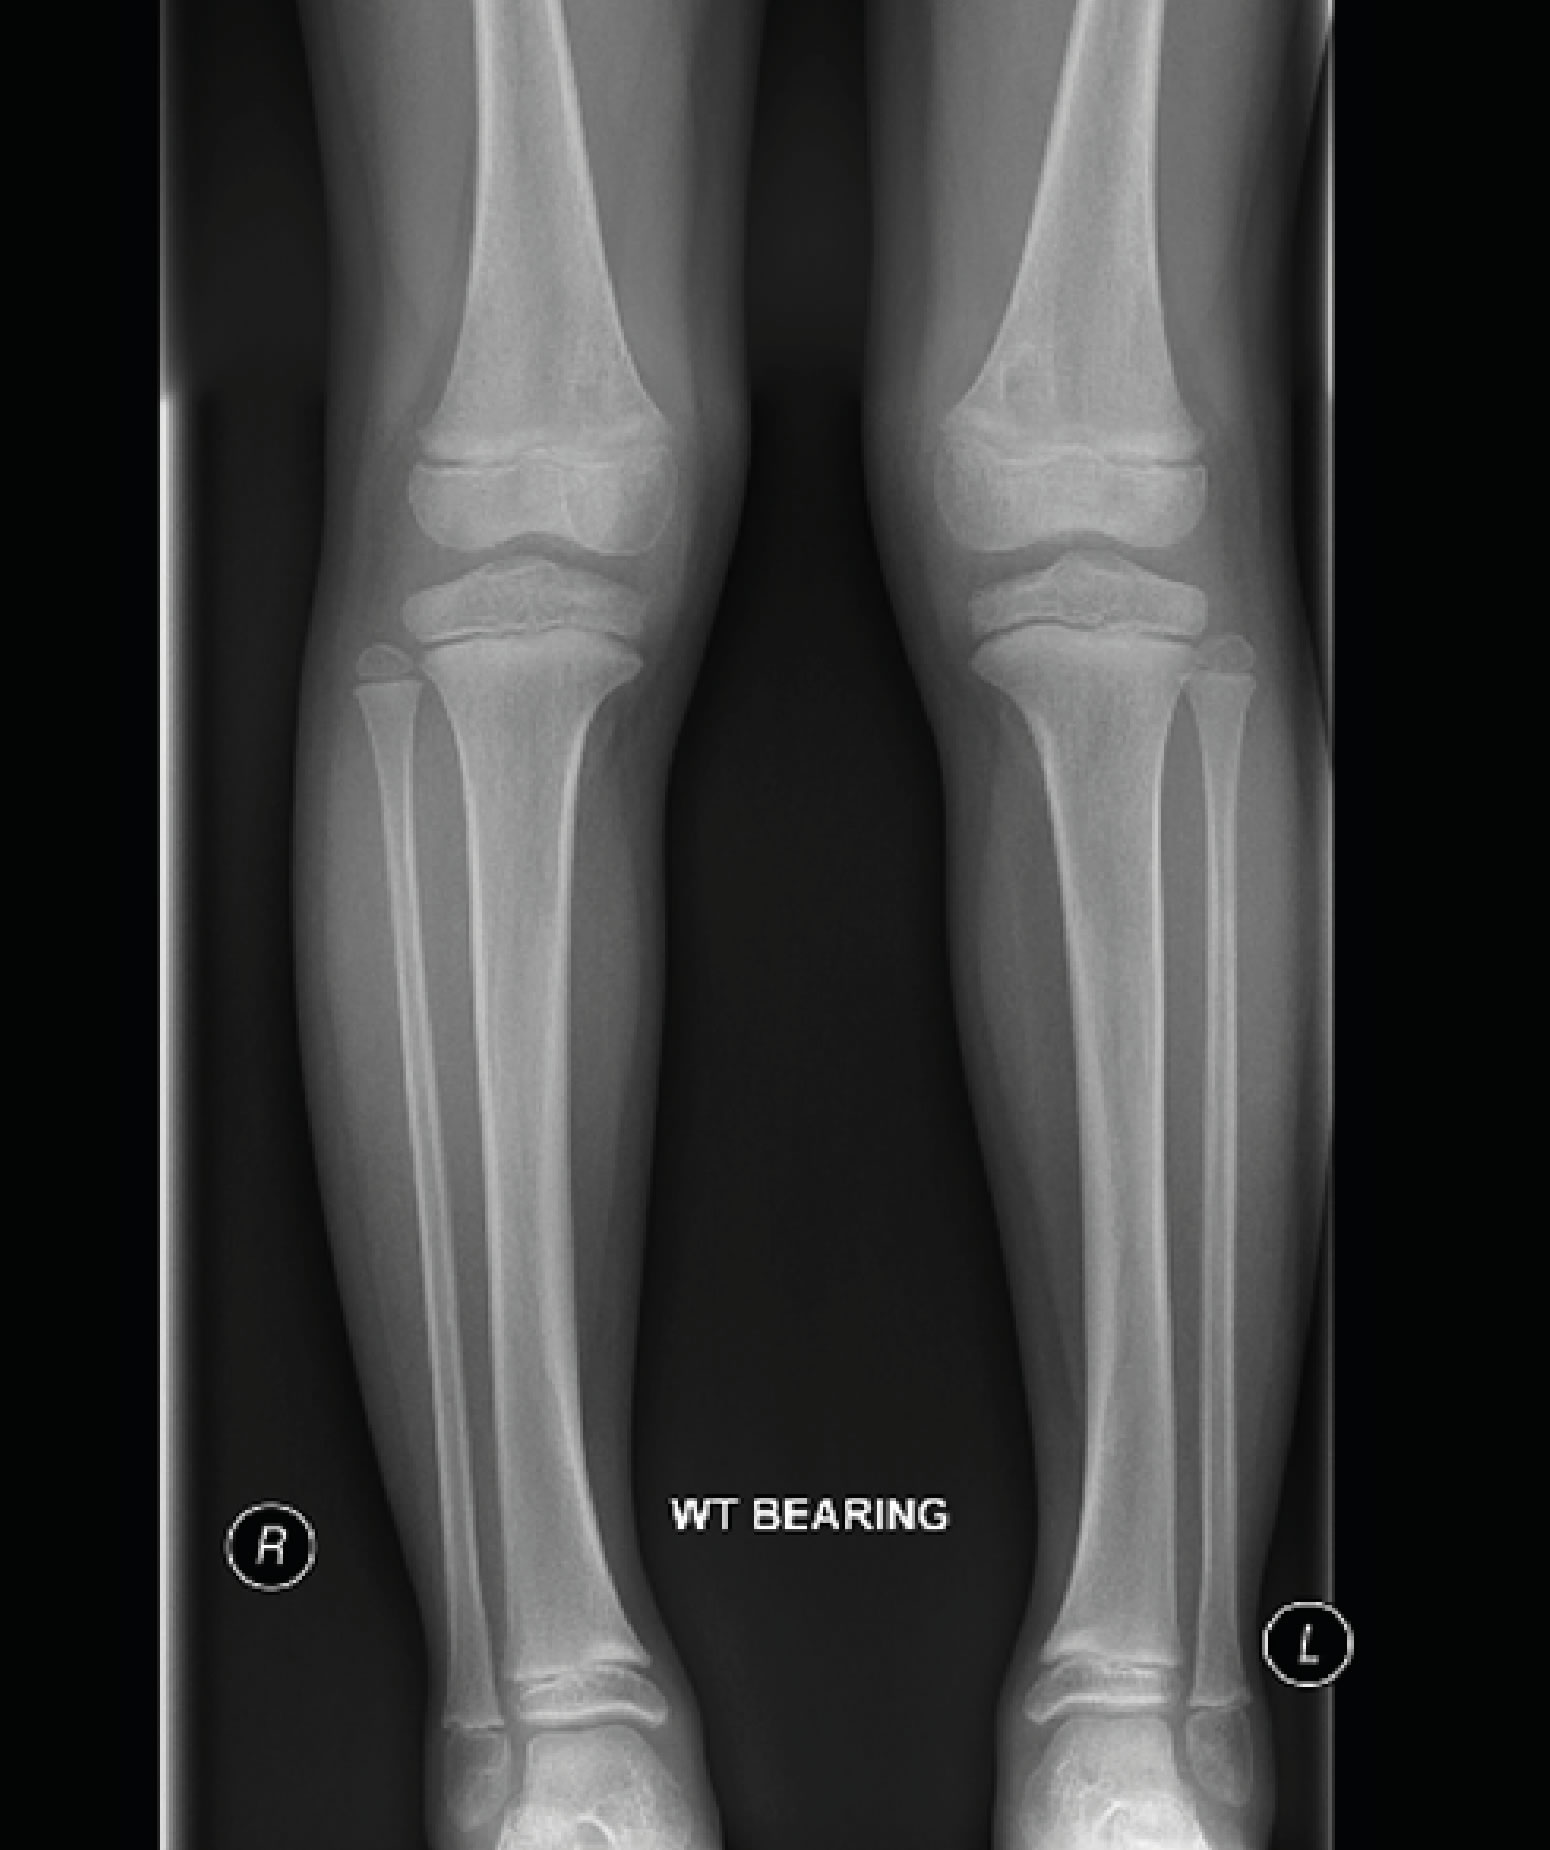 X-ray at 5 yrs showing results